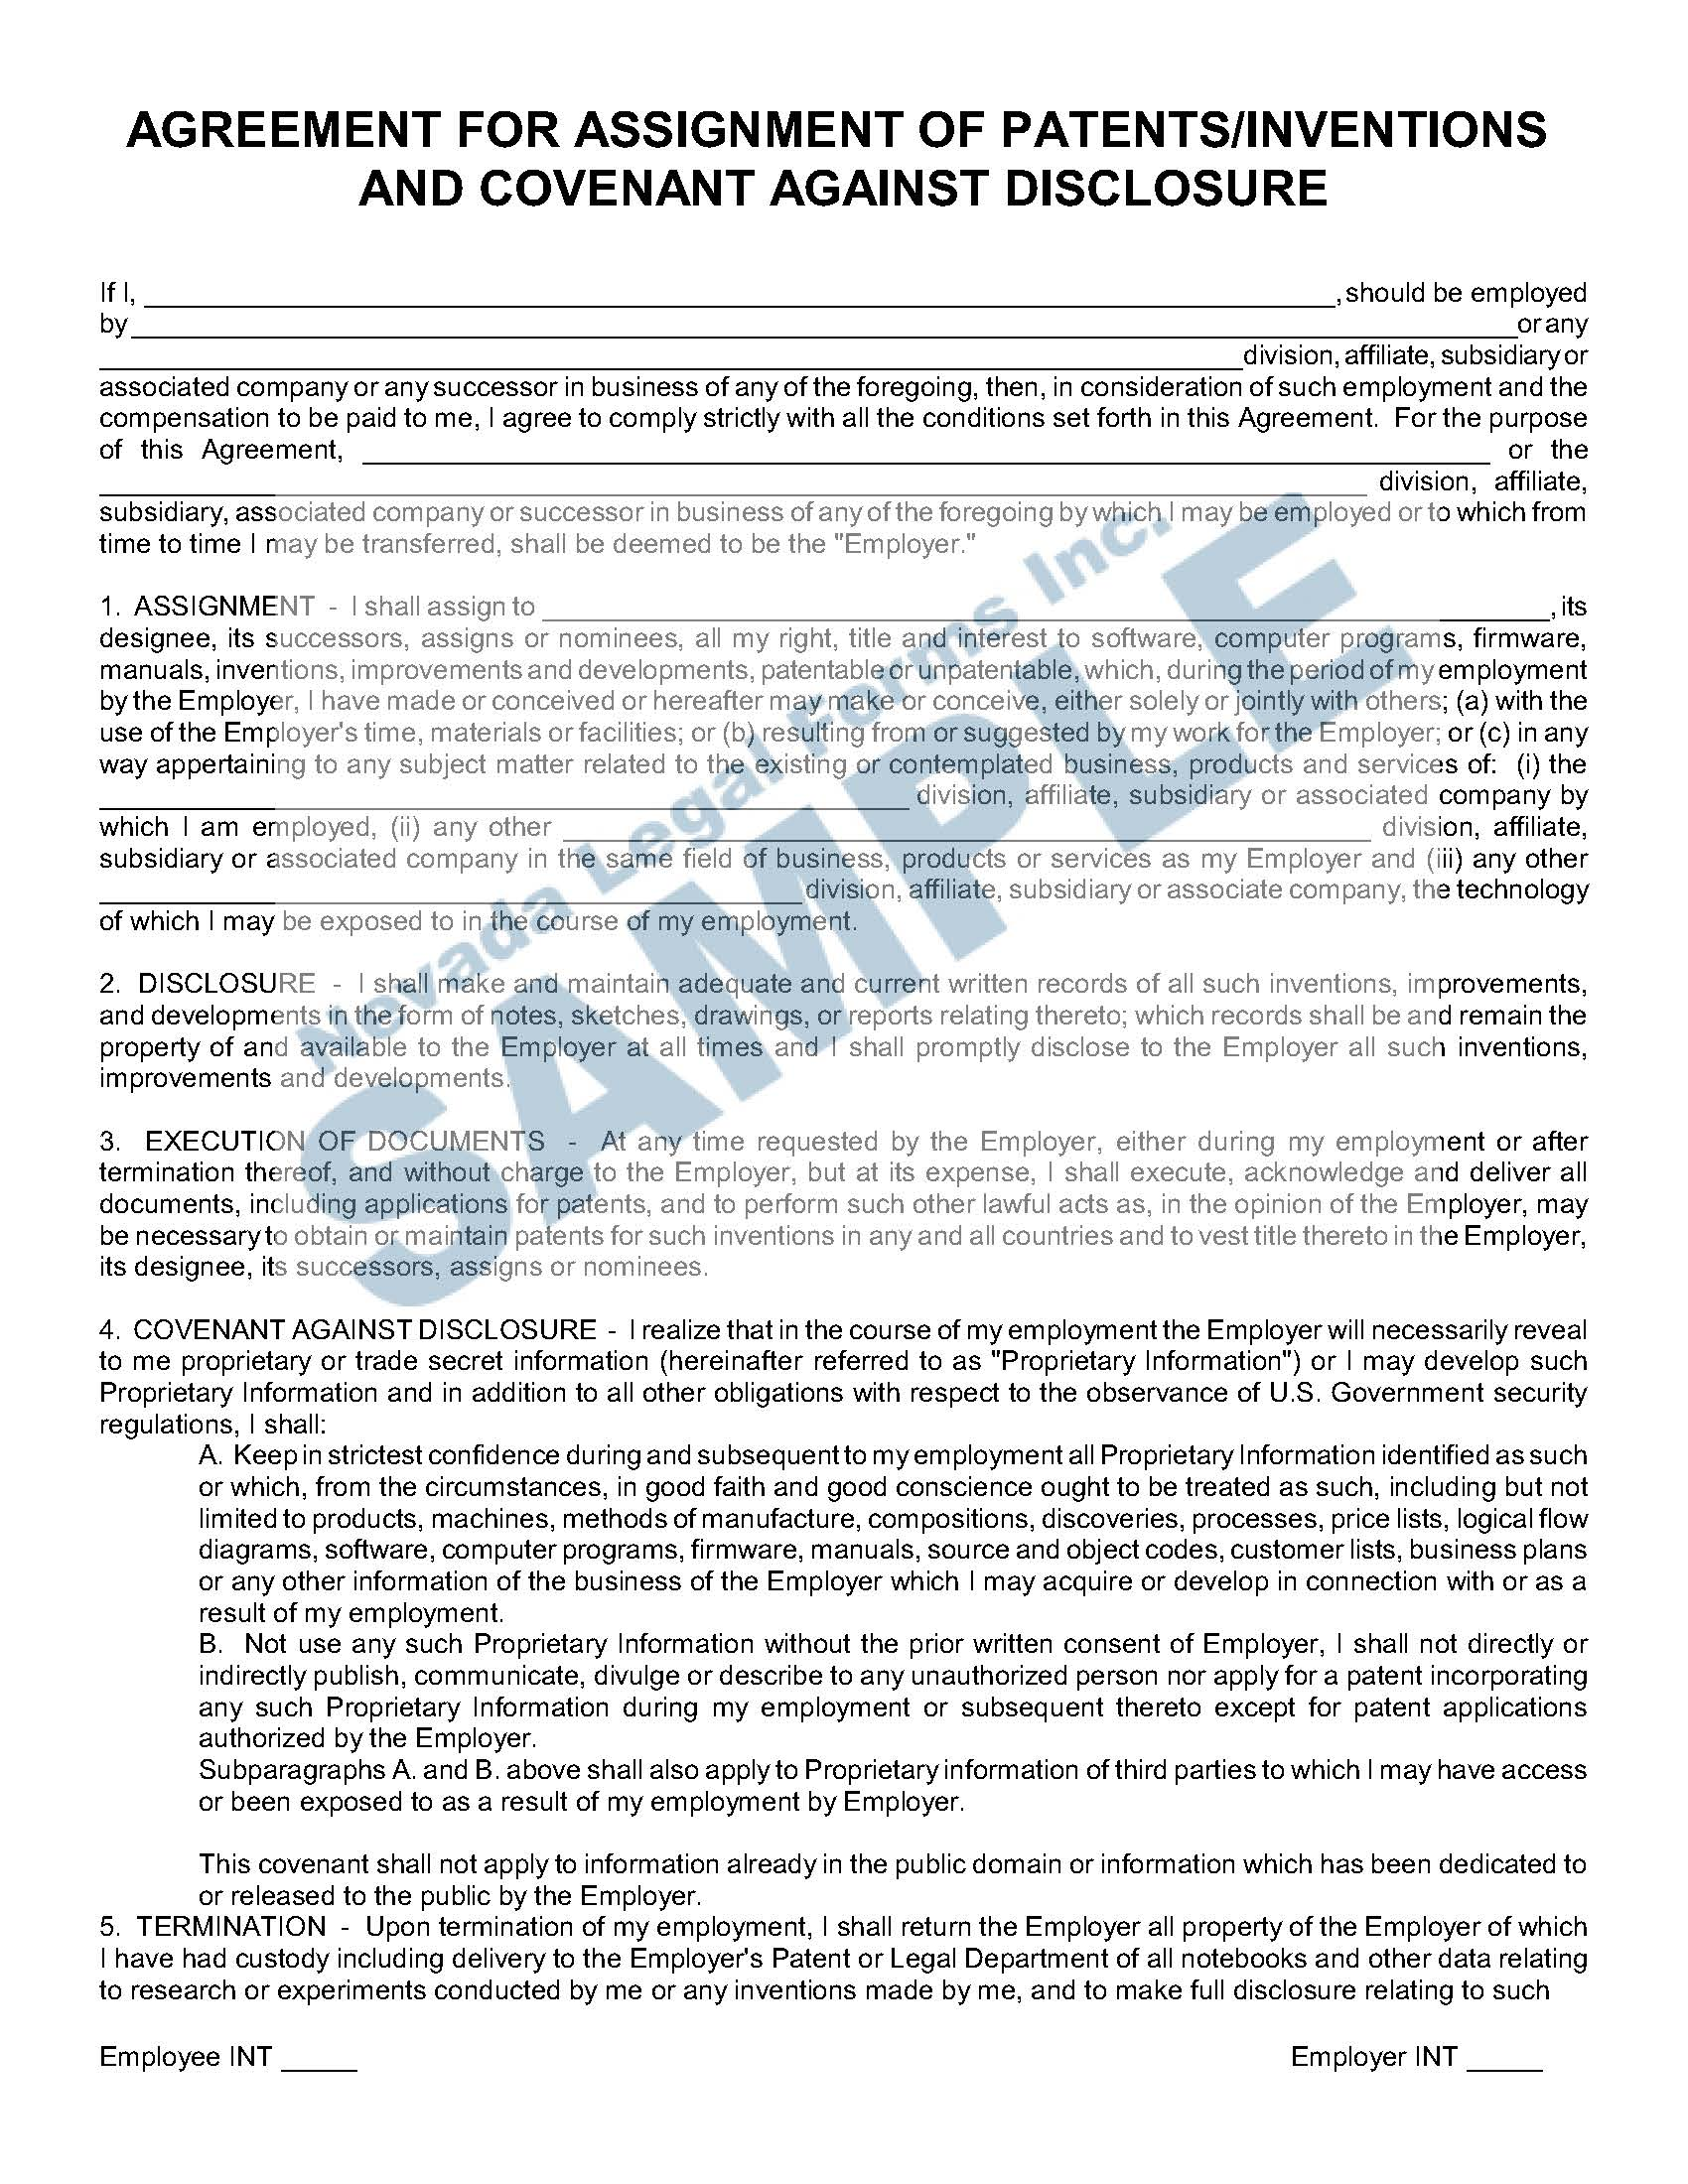 Agreement For Assignment Of Patents Inventions And